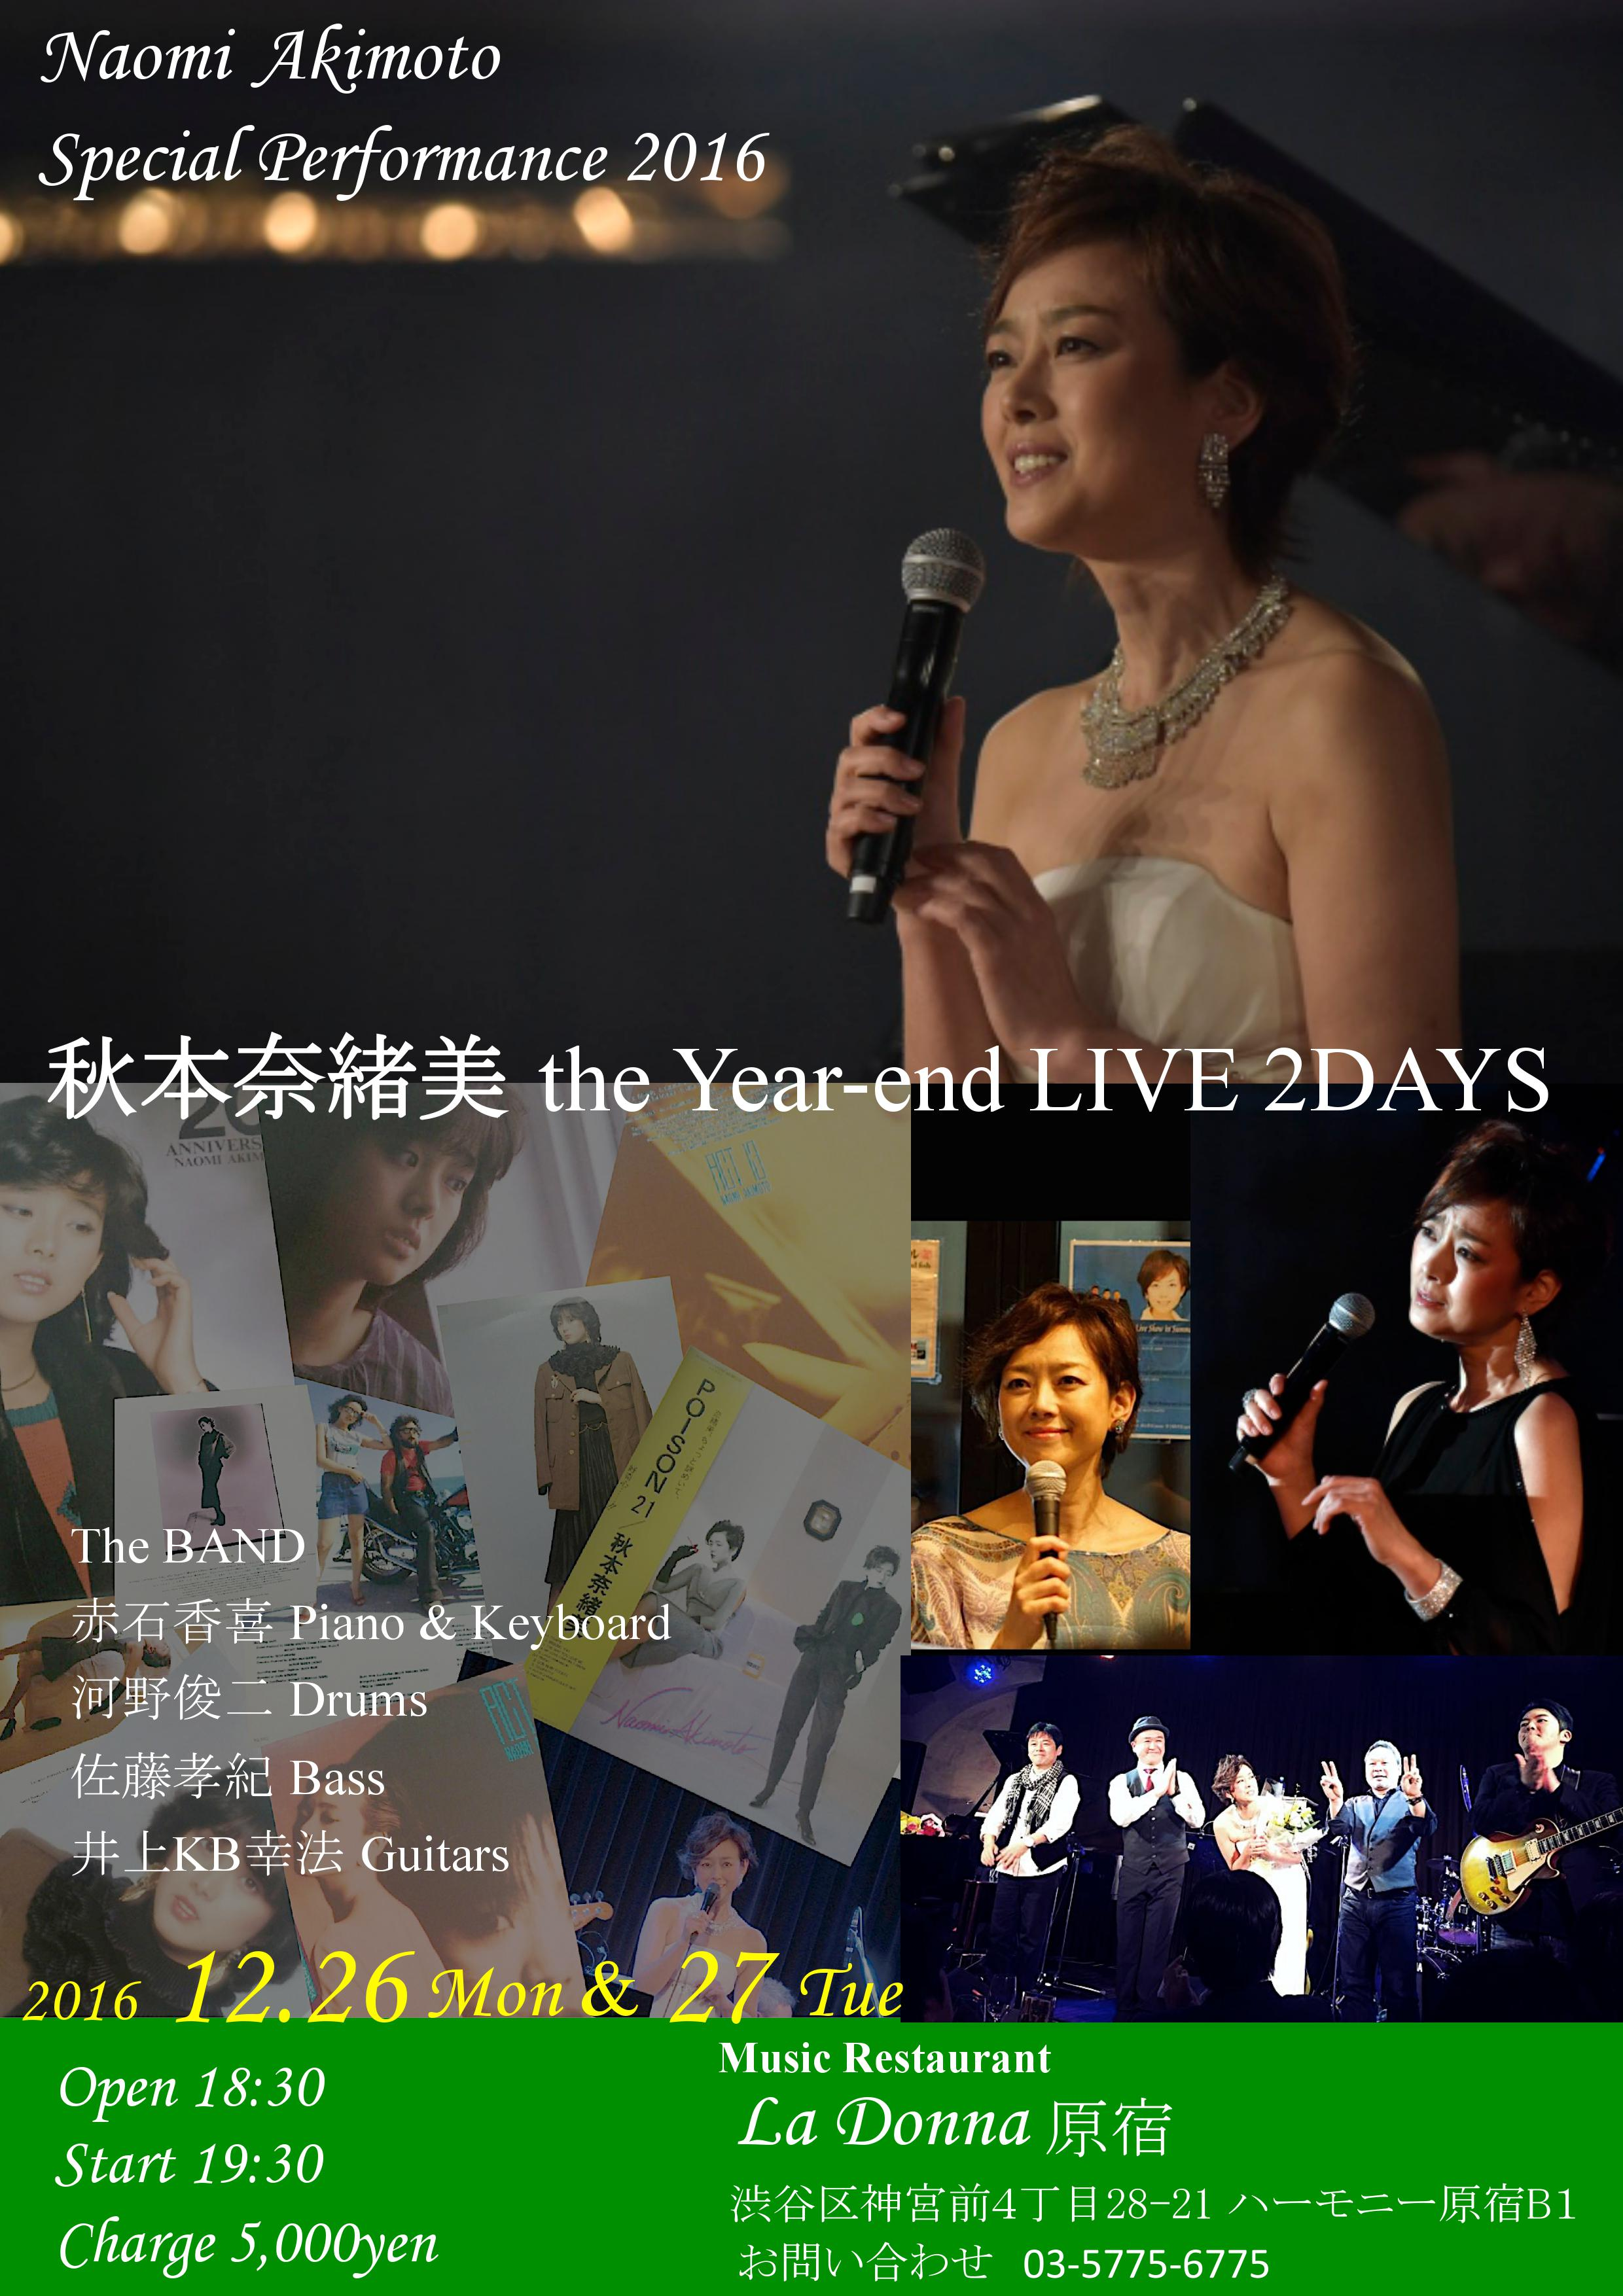 秋本奈緒美 the Year-end LIVE 2DAYS